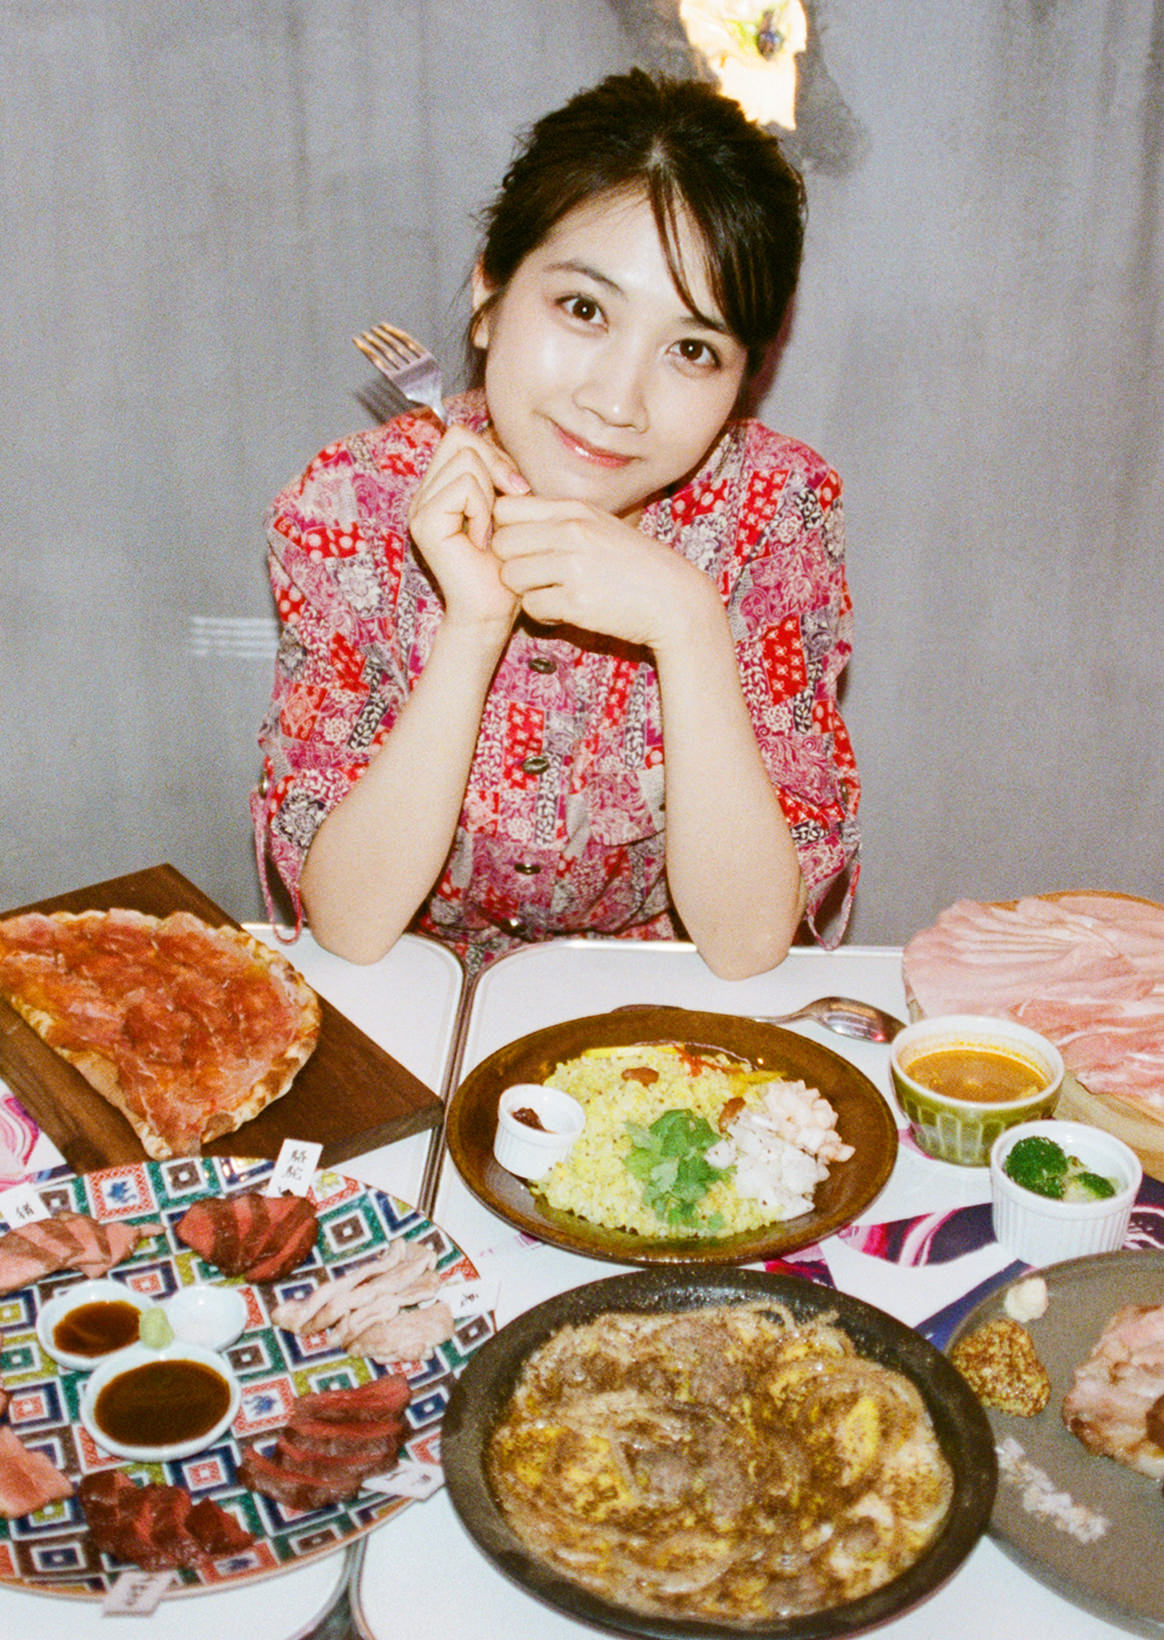 Taste and crowd funding to support fully start. To Honoka Matsumoto and rotating gourmet CRYDD.